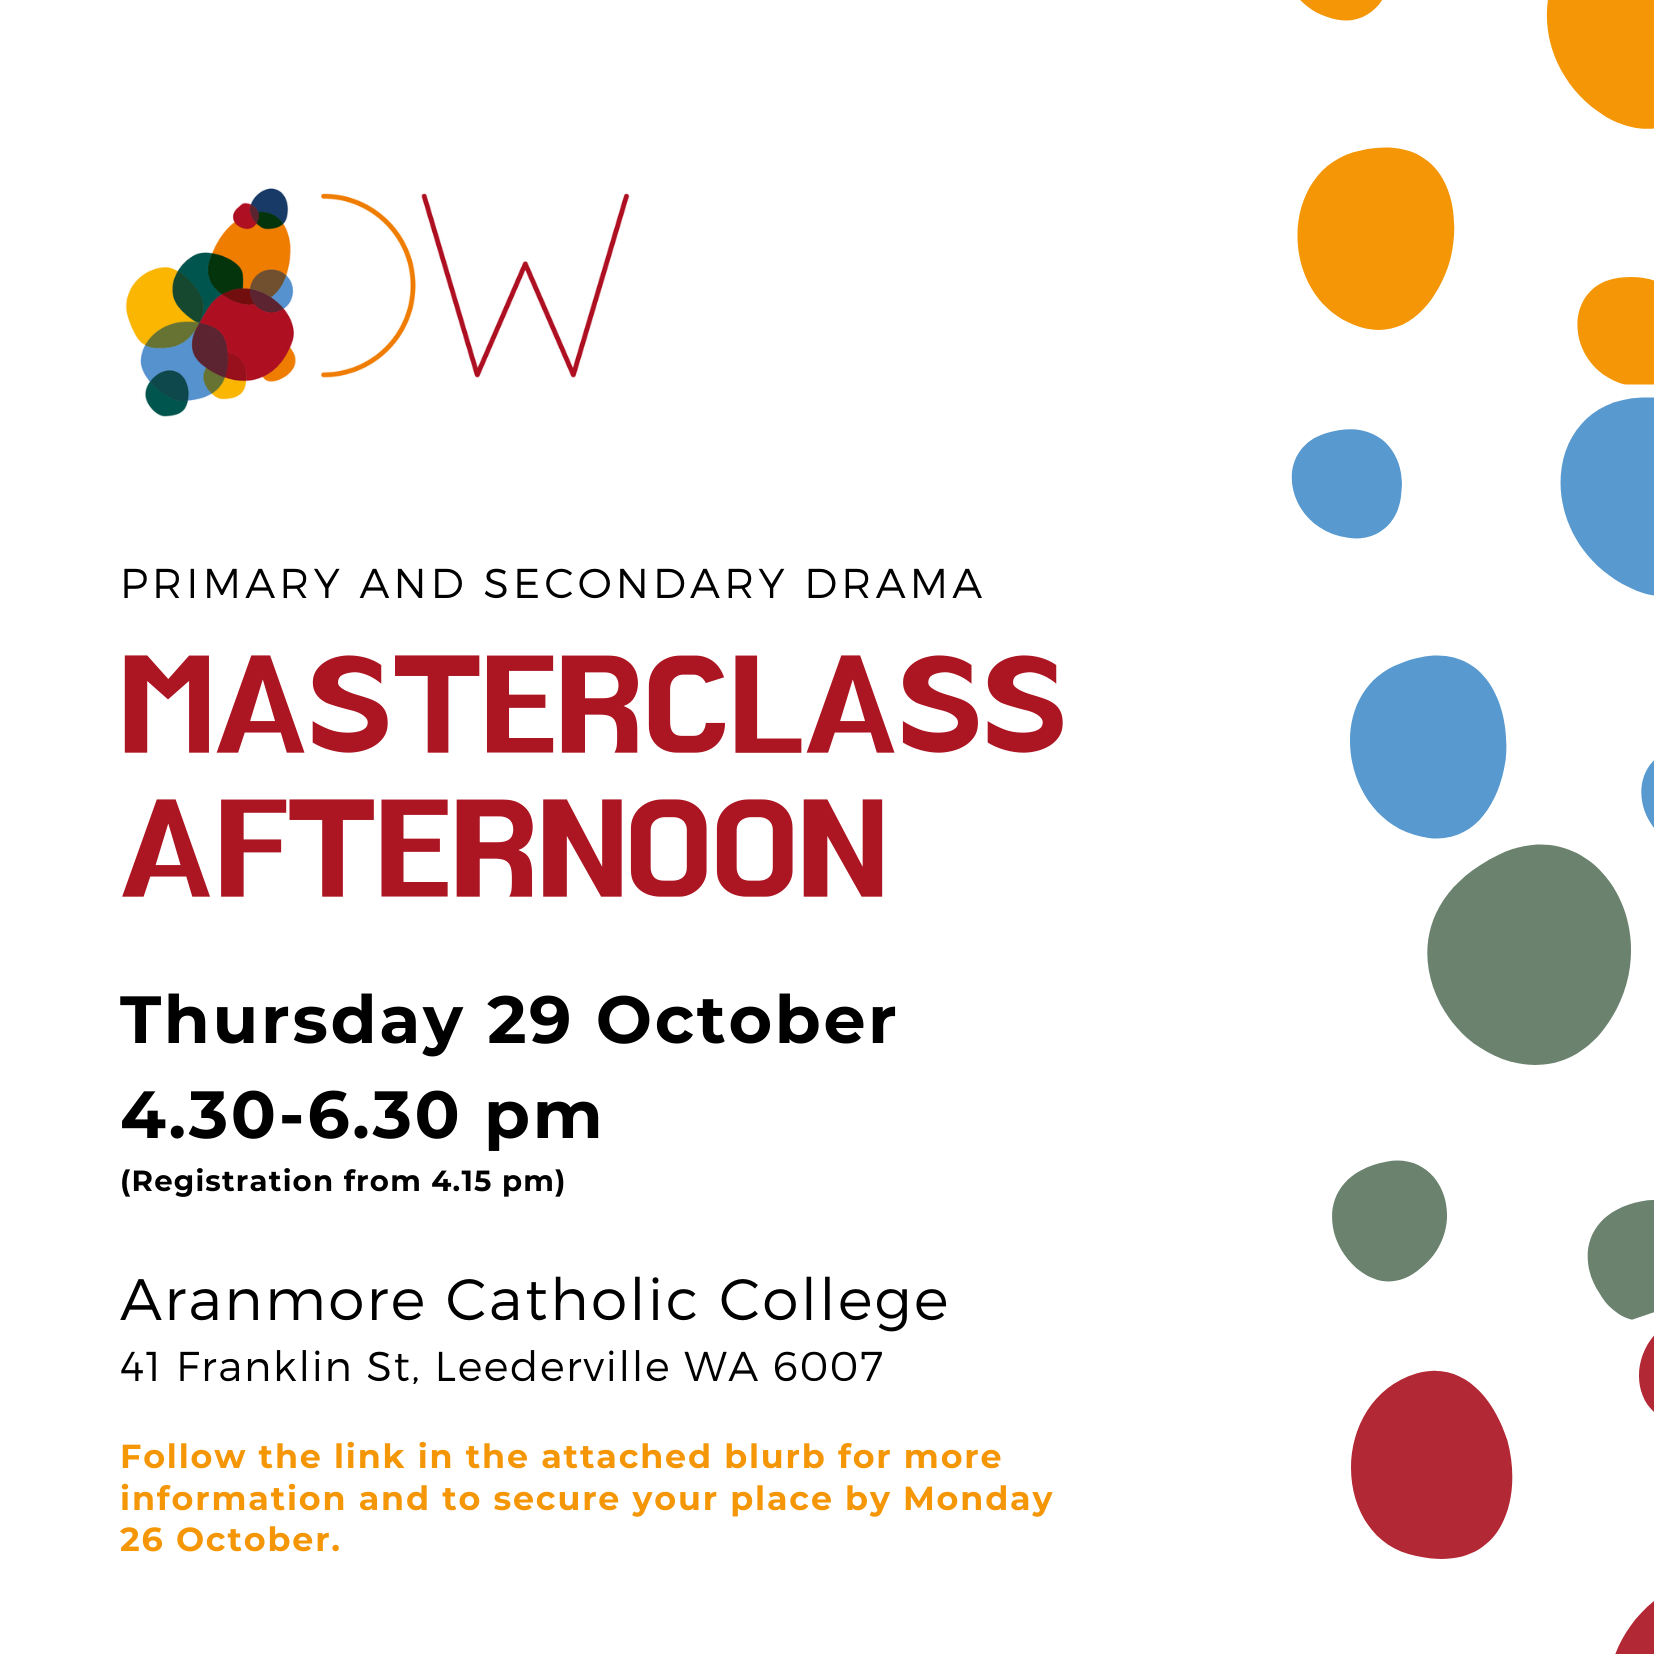 DramaWest Masterclass Afternoon Invite